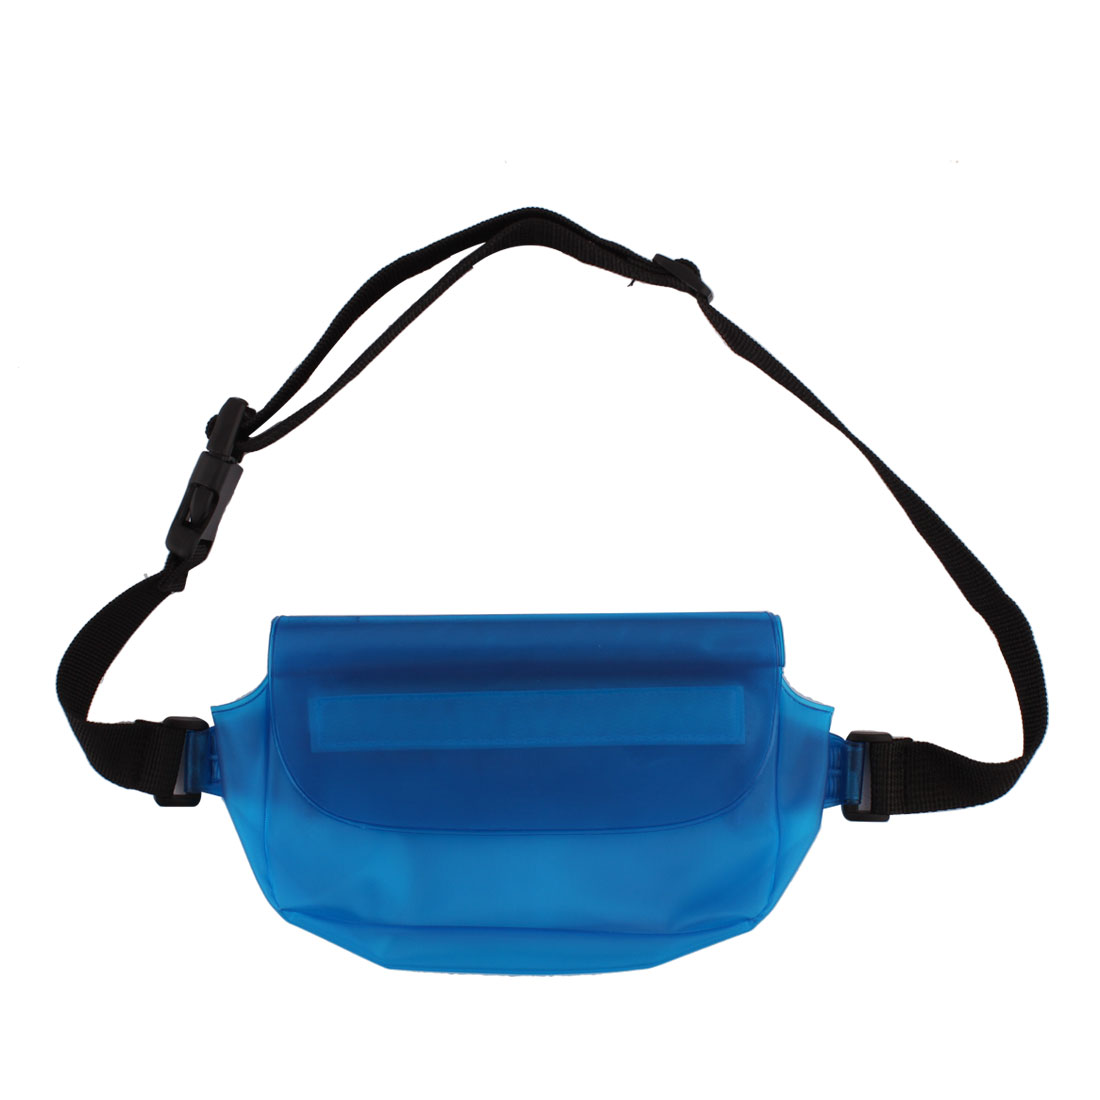 PVC Water Resistant Waist Pack Bag Pocket Phone Holder Protector Blue